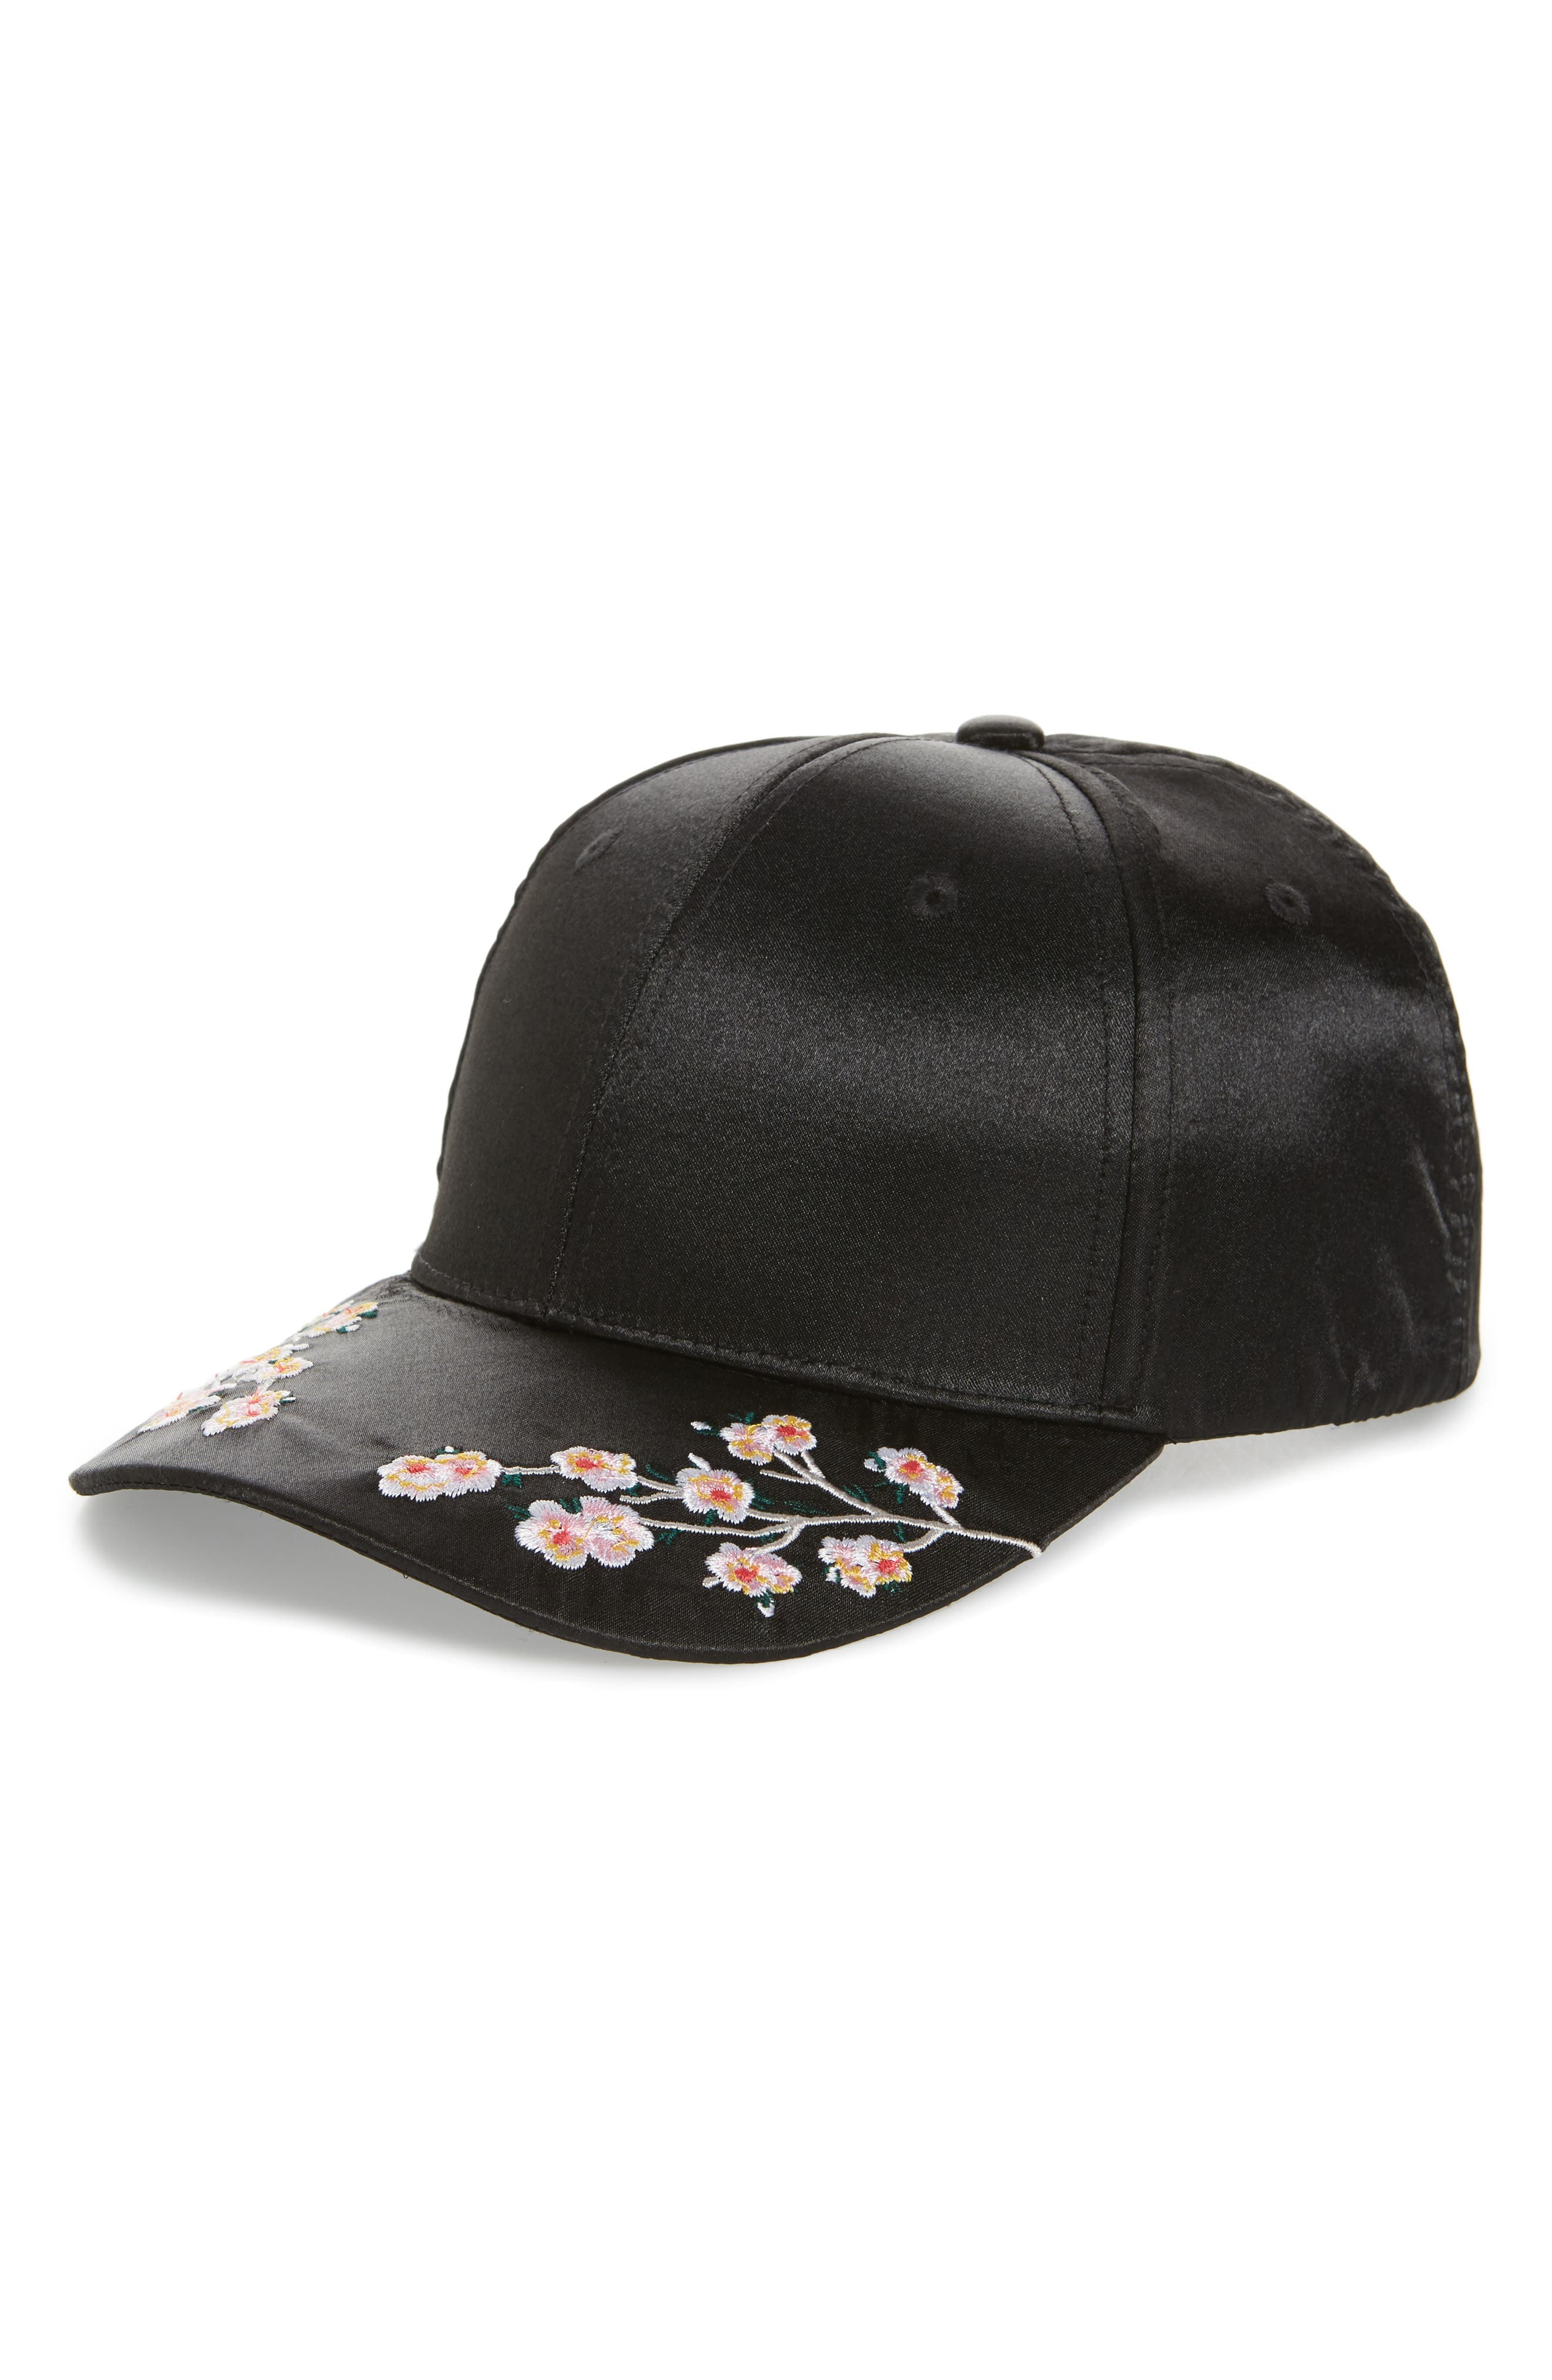 Embroidered Satin Adjustable Ball Cap,                             Main thumbnail 1, color,                             001